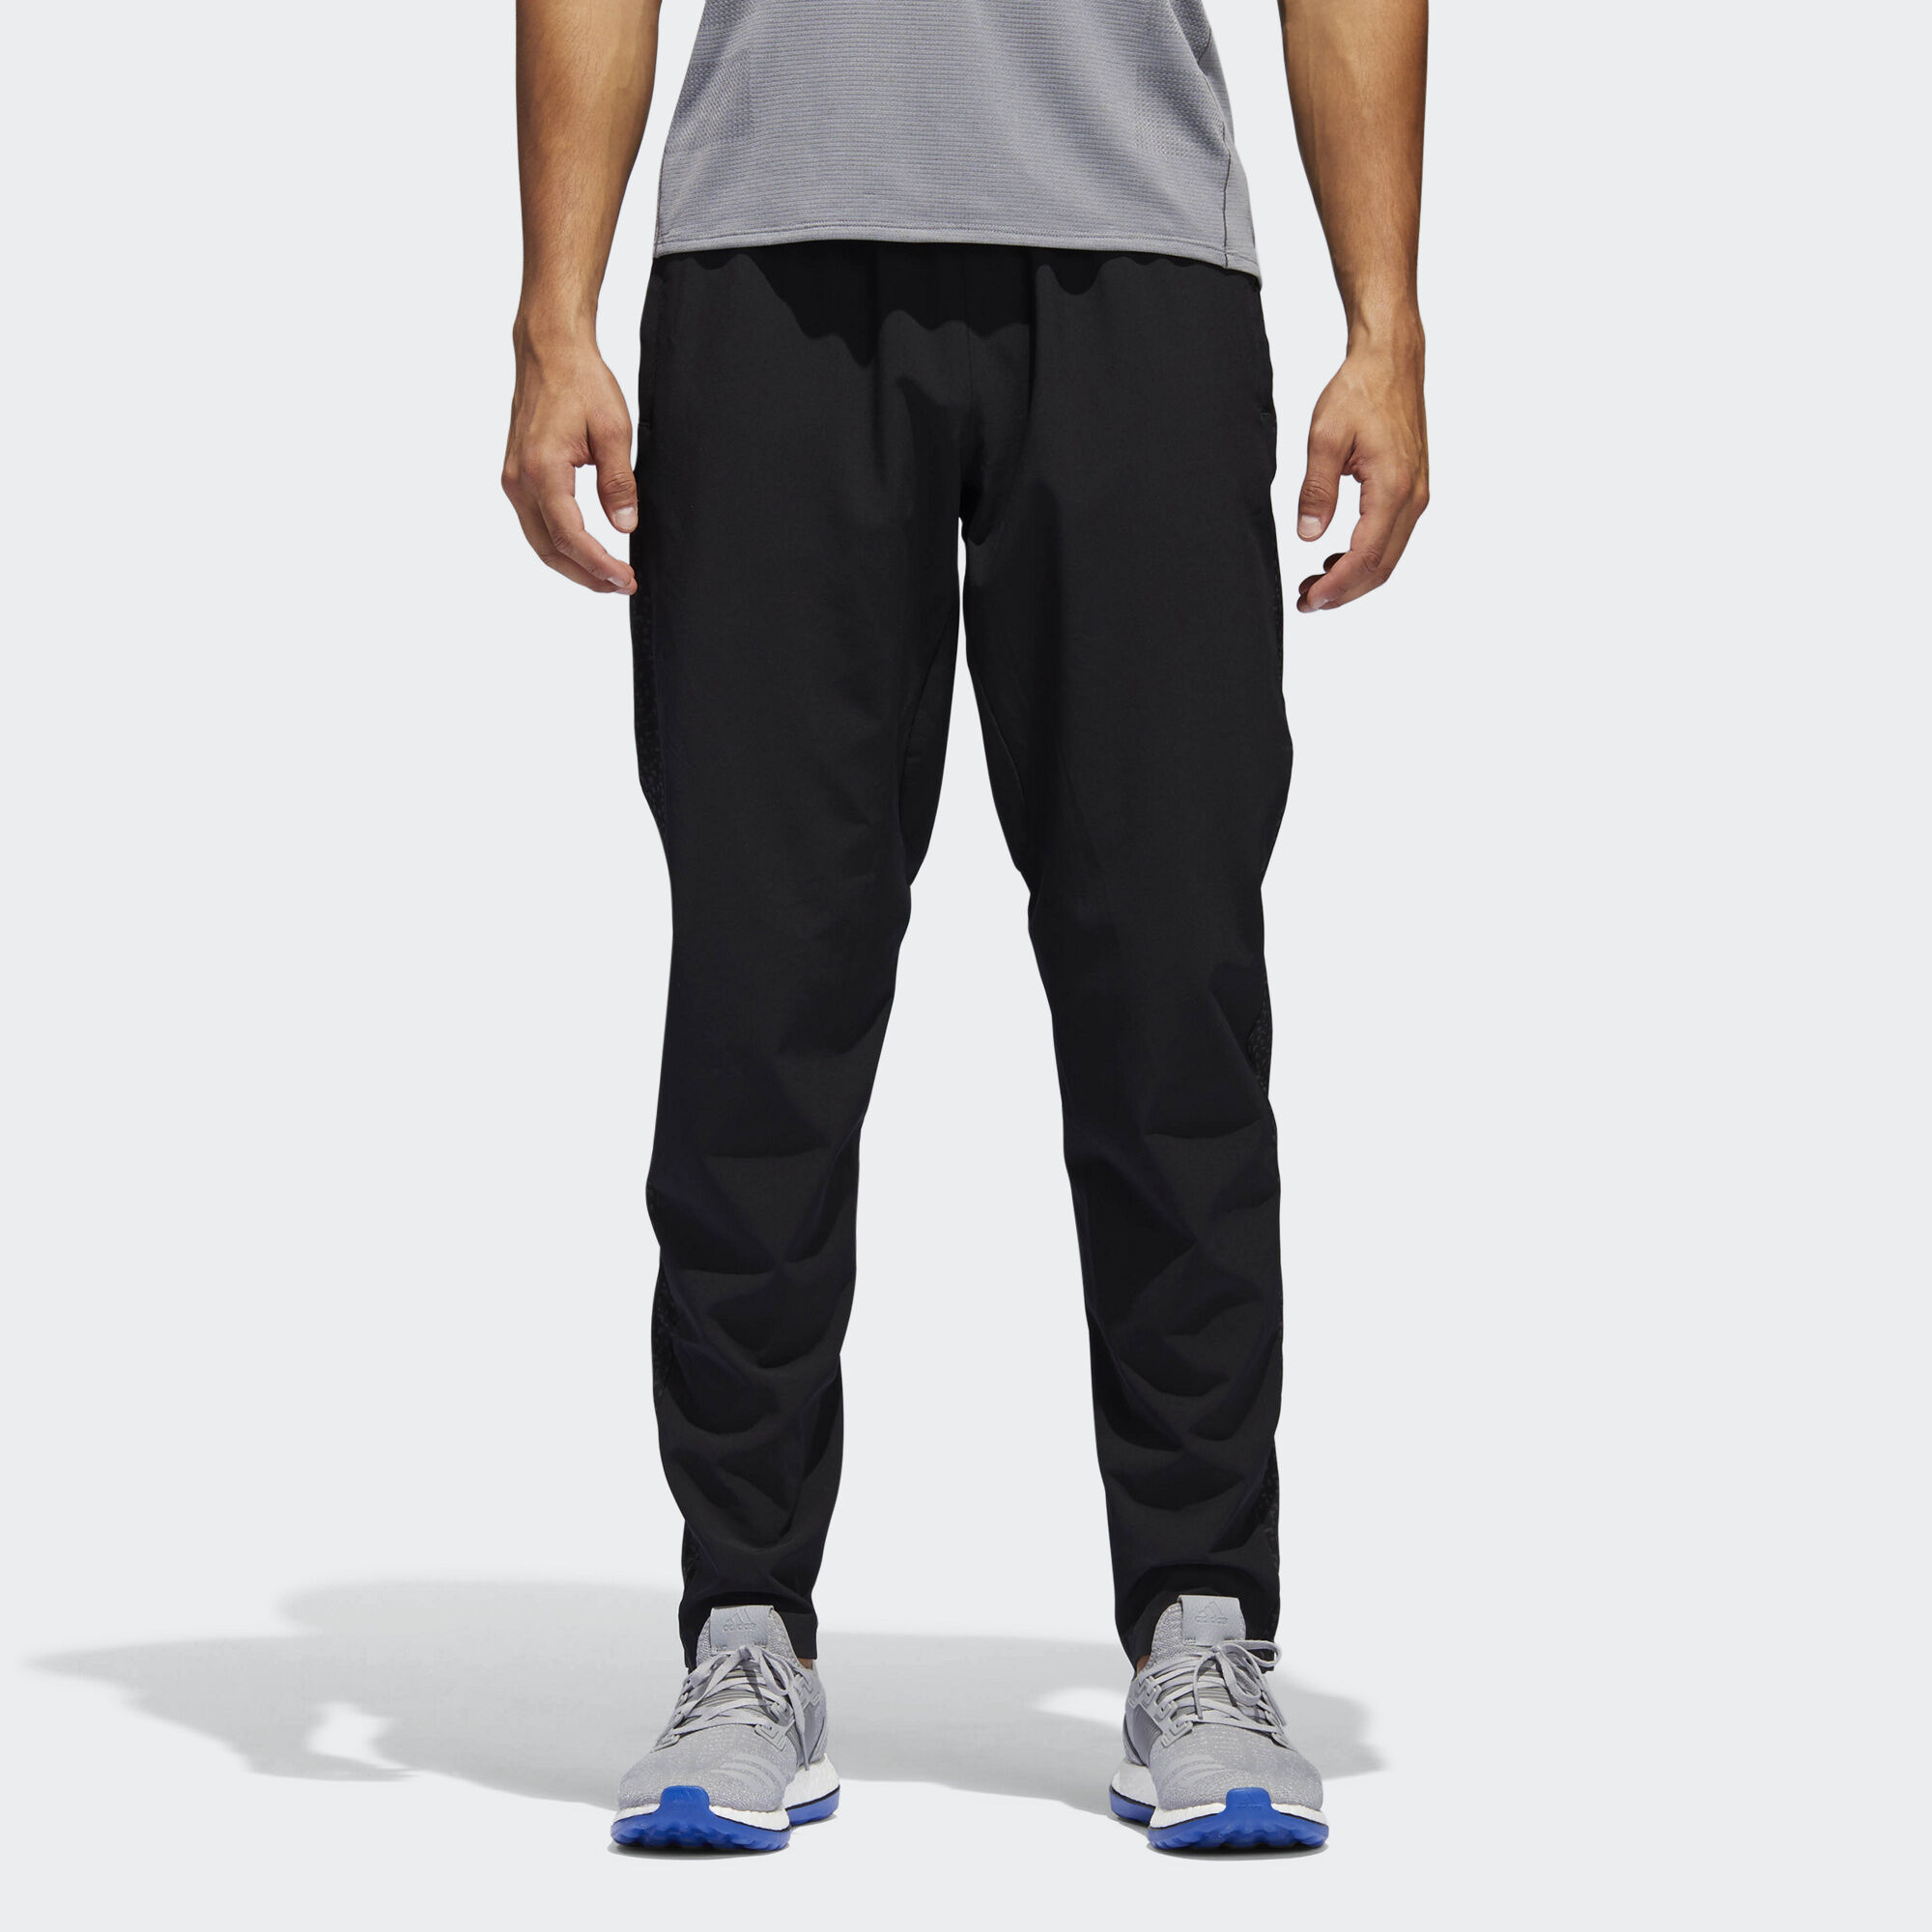 ADIDAS ORIGINALS SUPERSTAR RELAXED CROPPED MEN'S TRACK PANTS BLACK WHITE BK3632